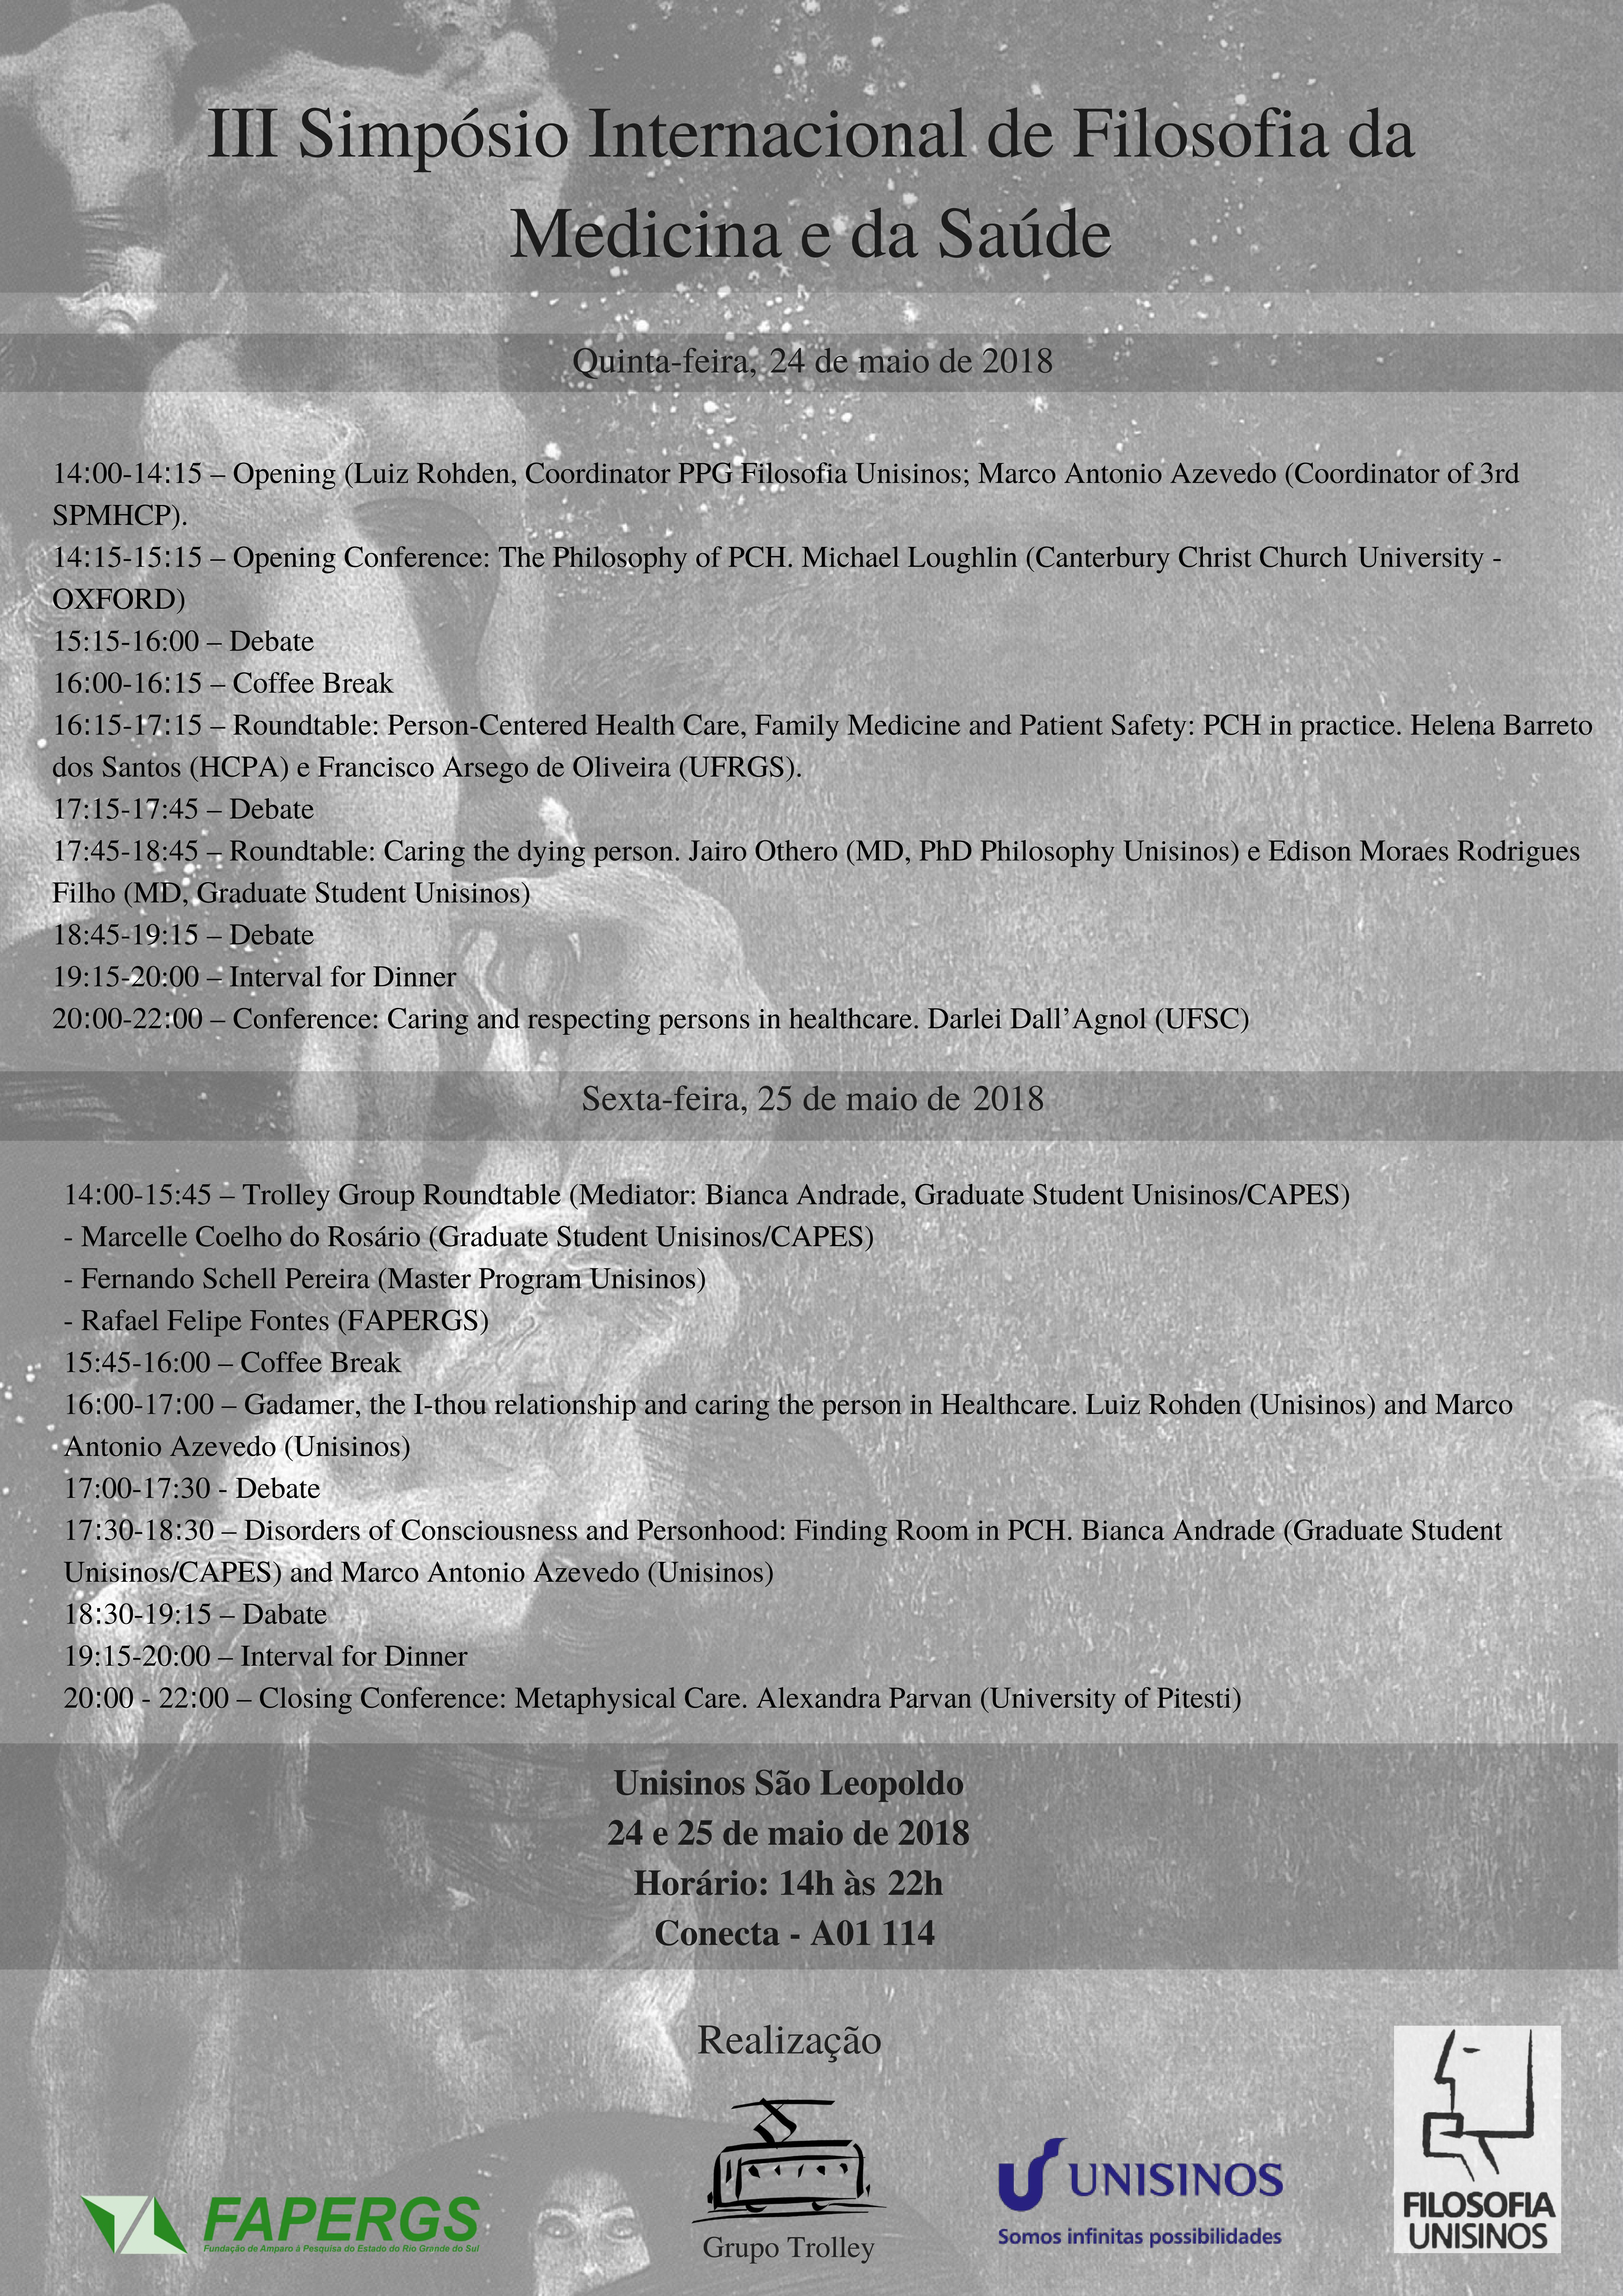 III Symposium in Philosophy of Medicine and Health Care